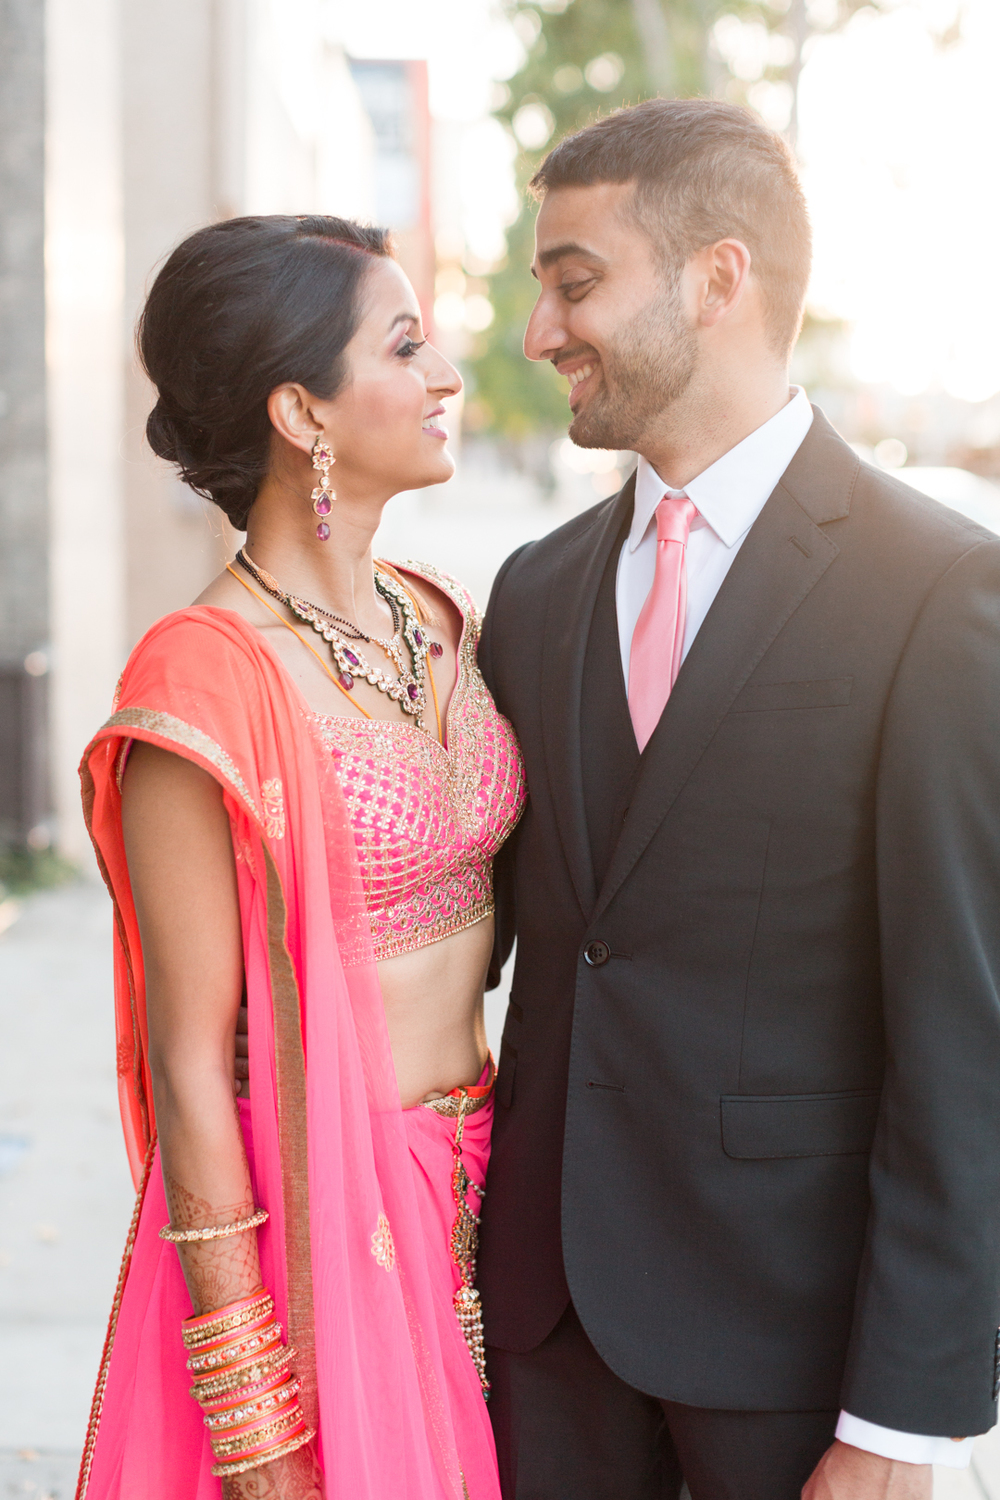 CourtneyPaige_WeddingPhotography_Nagjee-105.jpg